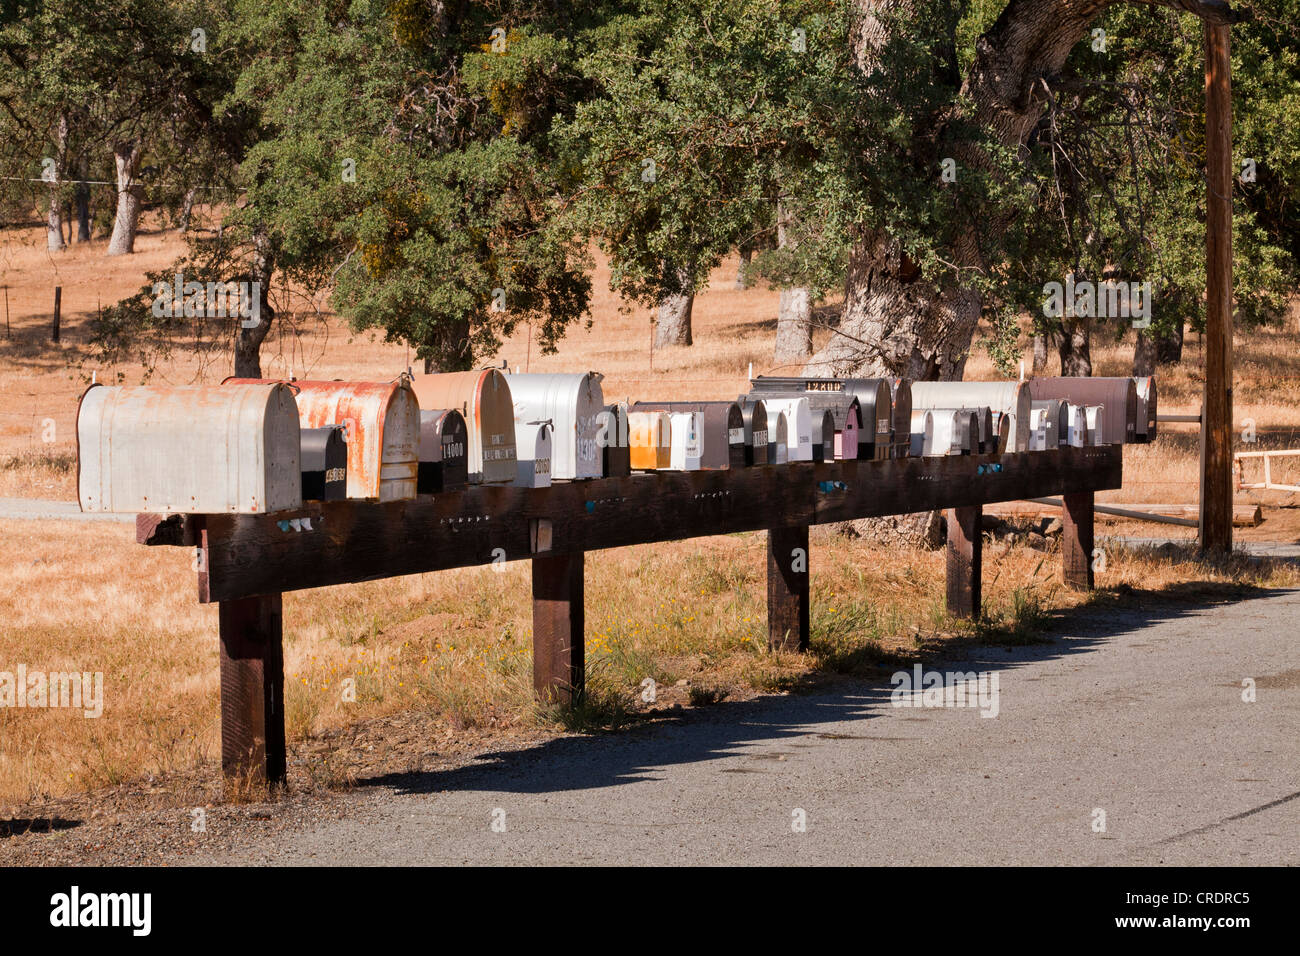 Row of mailboxes in rural America - Stock Image